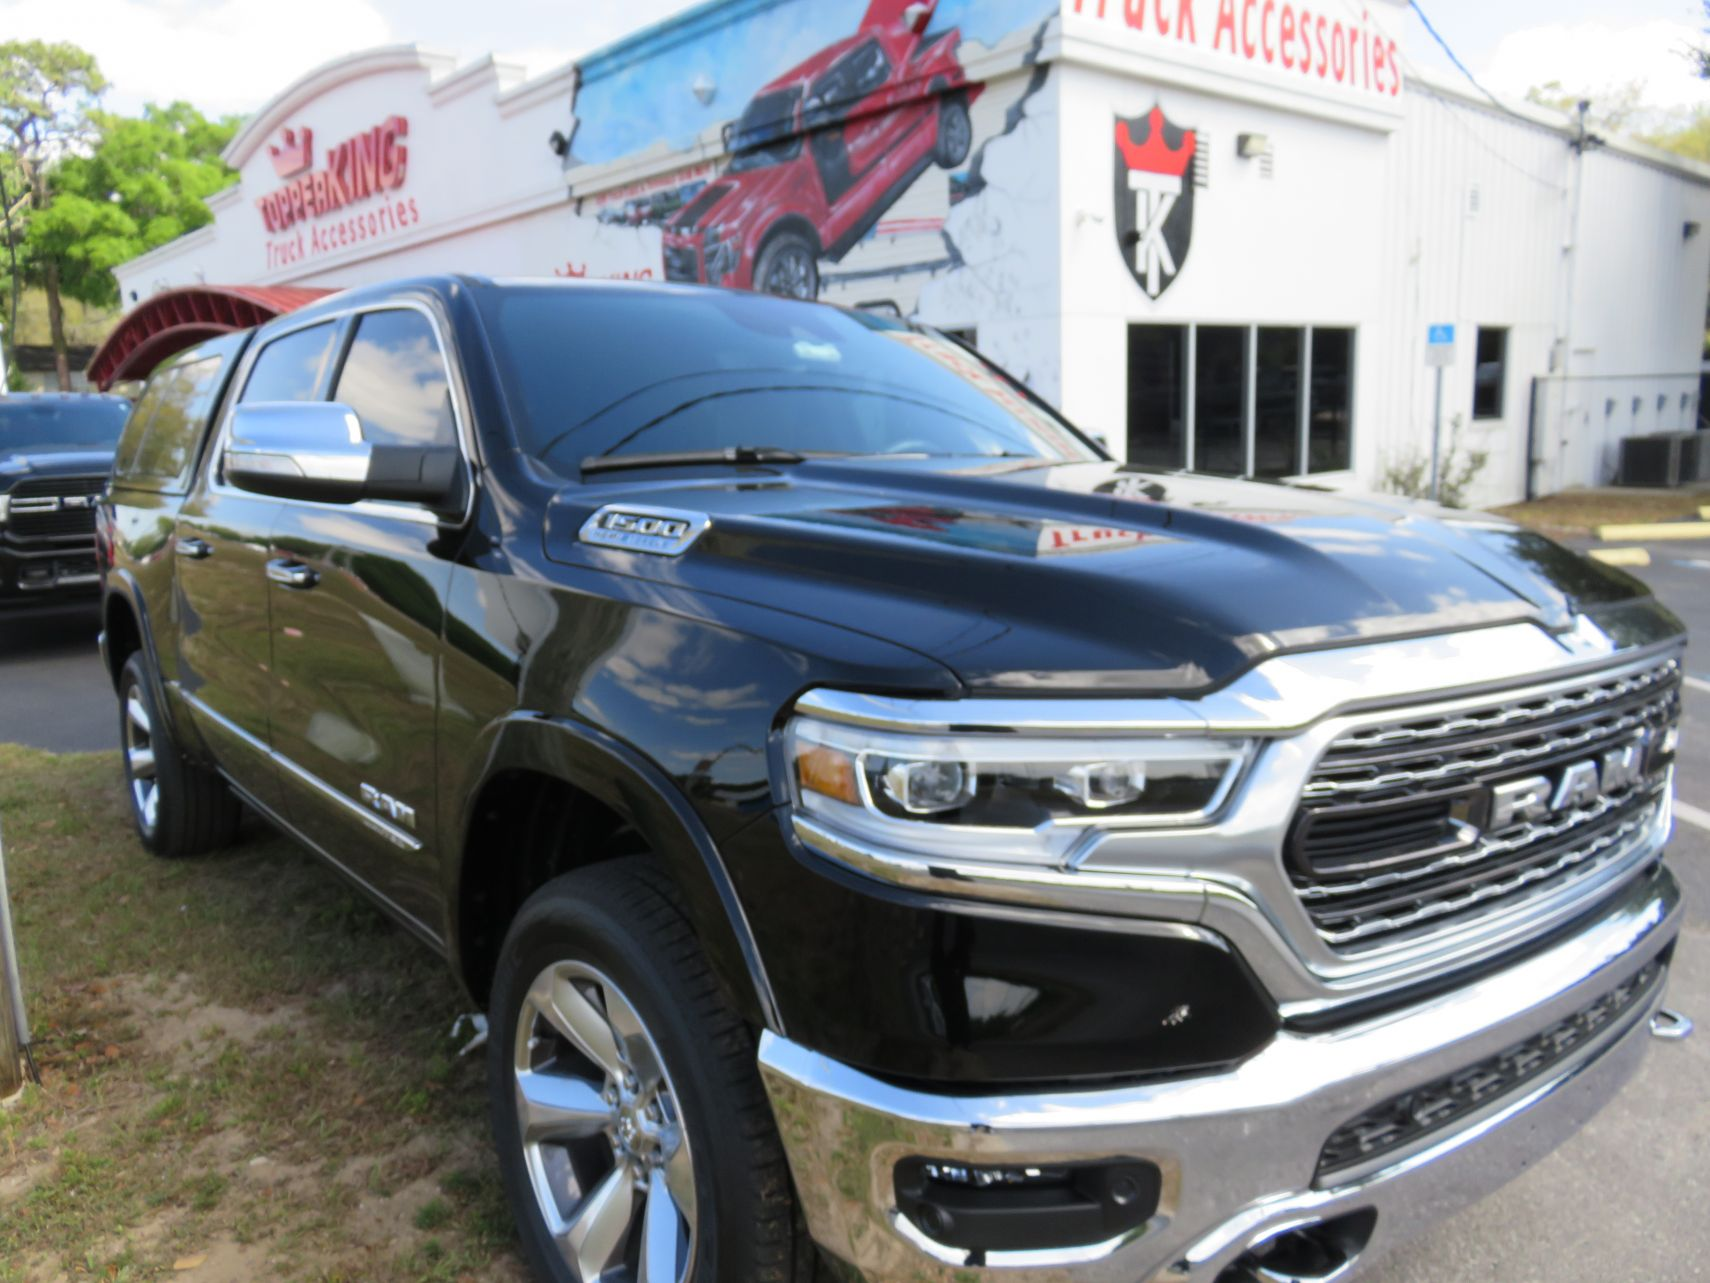 2020 Dodge RAM with LEER100XL, Tint, Hitch by TopperKING Brandon 813-689-2449 or Clearwater FL 727-530-9066. Come out and see us today!